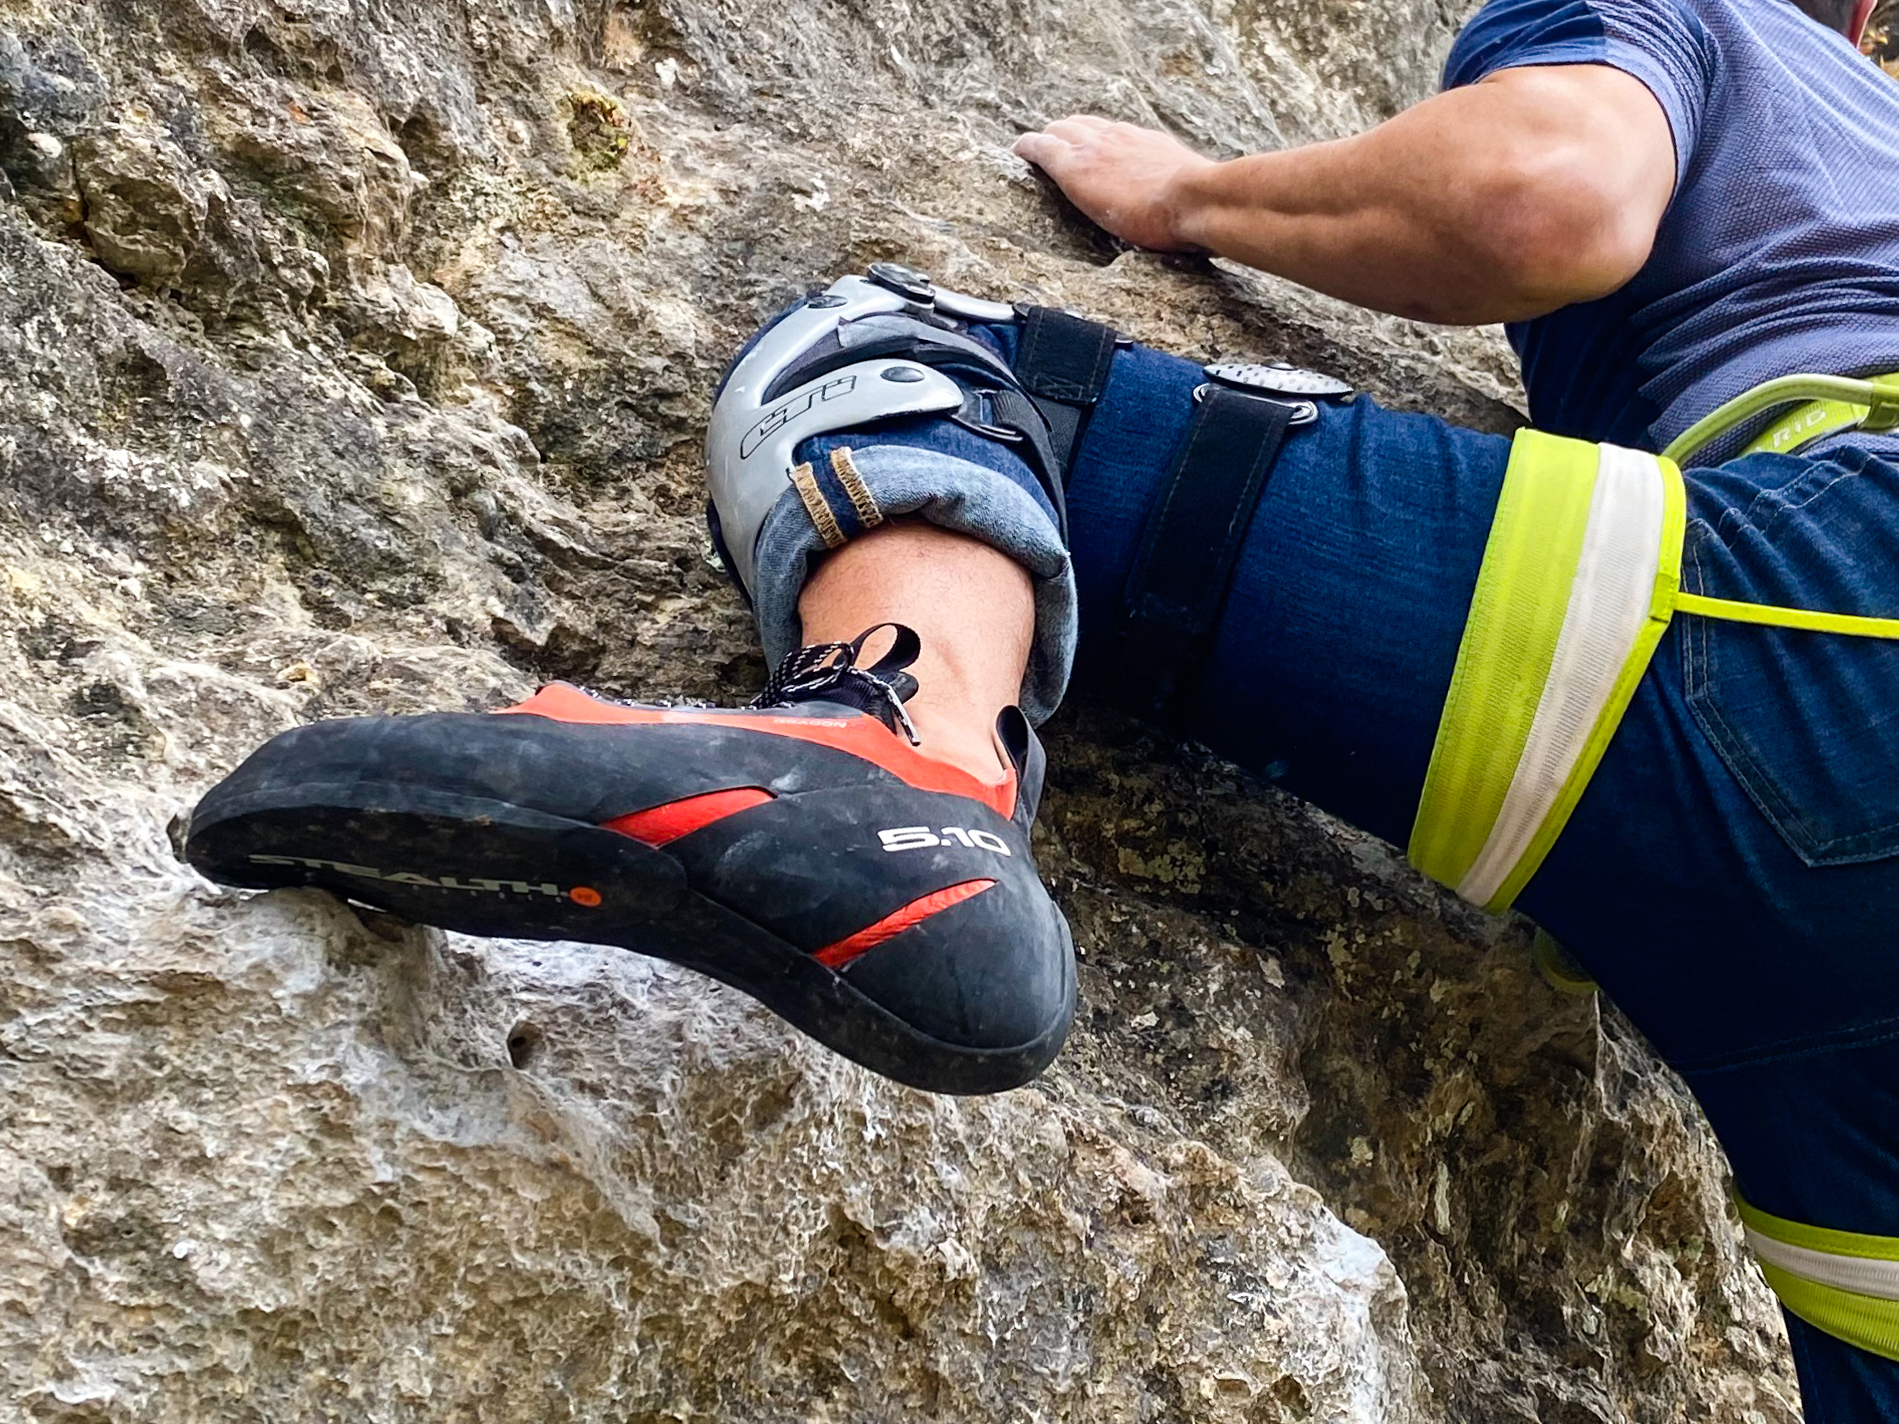 Five Ten Dragon Lace climbing shoe